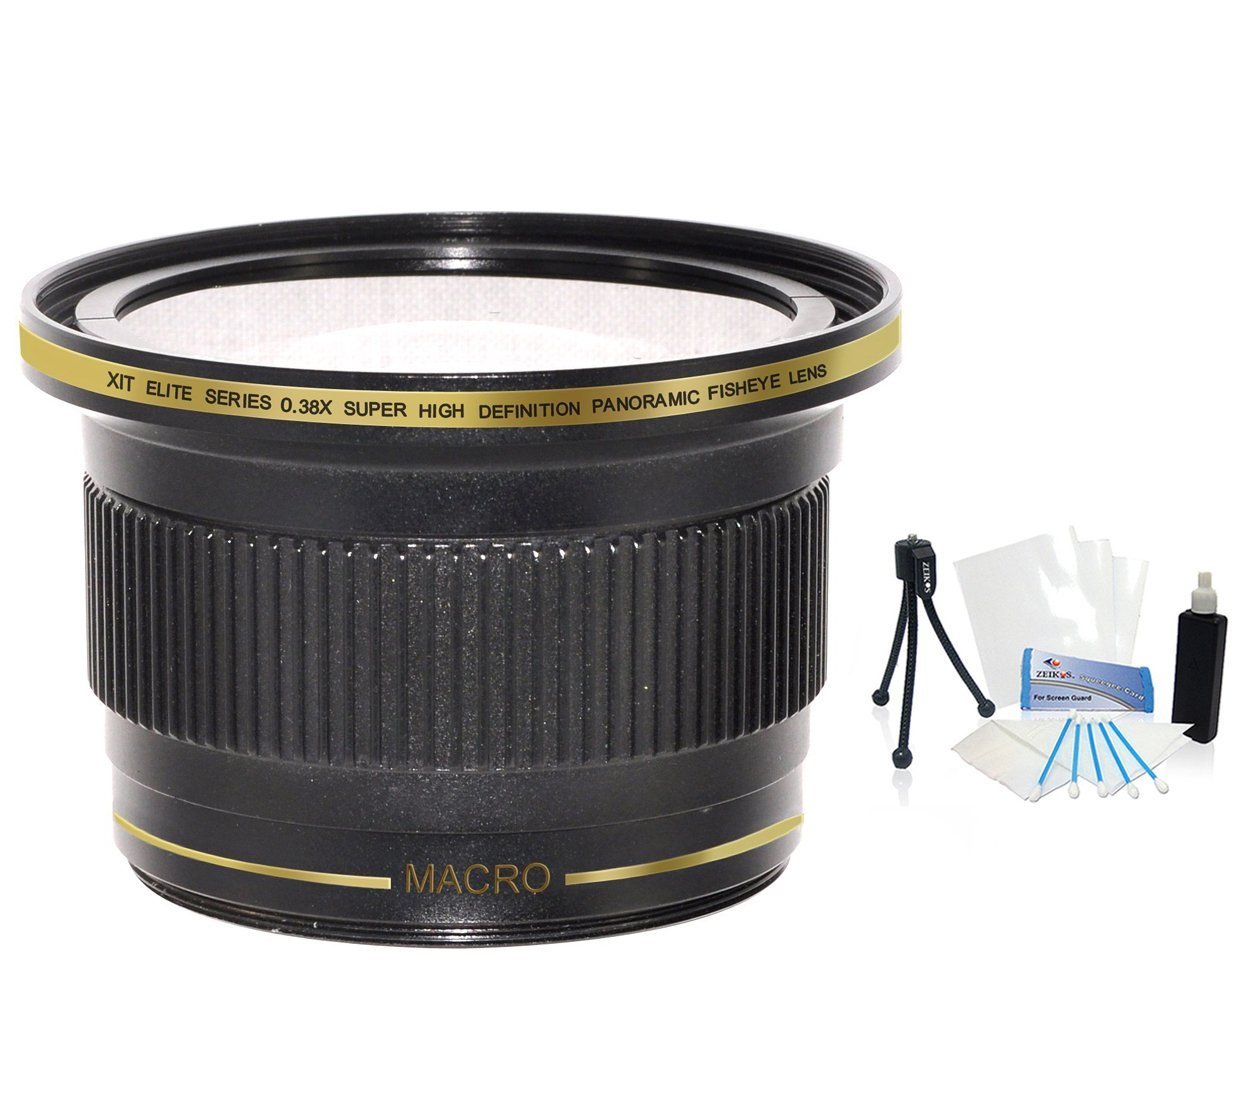 J2 V1 J1 UltraP S3 S1 Cap Keeper Nikon 1 Lenses 40.5mm Digital Pro Telephoto Lens Bundle For The Nikon 1 J5 V2 Mirrorless Digital Camera Which Have Any Of These Lens Pen Cleaner Includes 2x Telephoto High Definition Lens 10-30mm, 30-110mm, 10mm